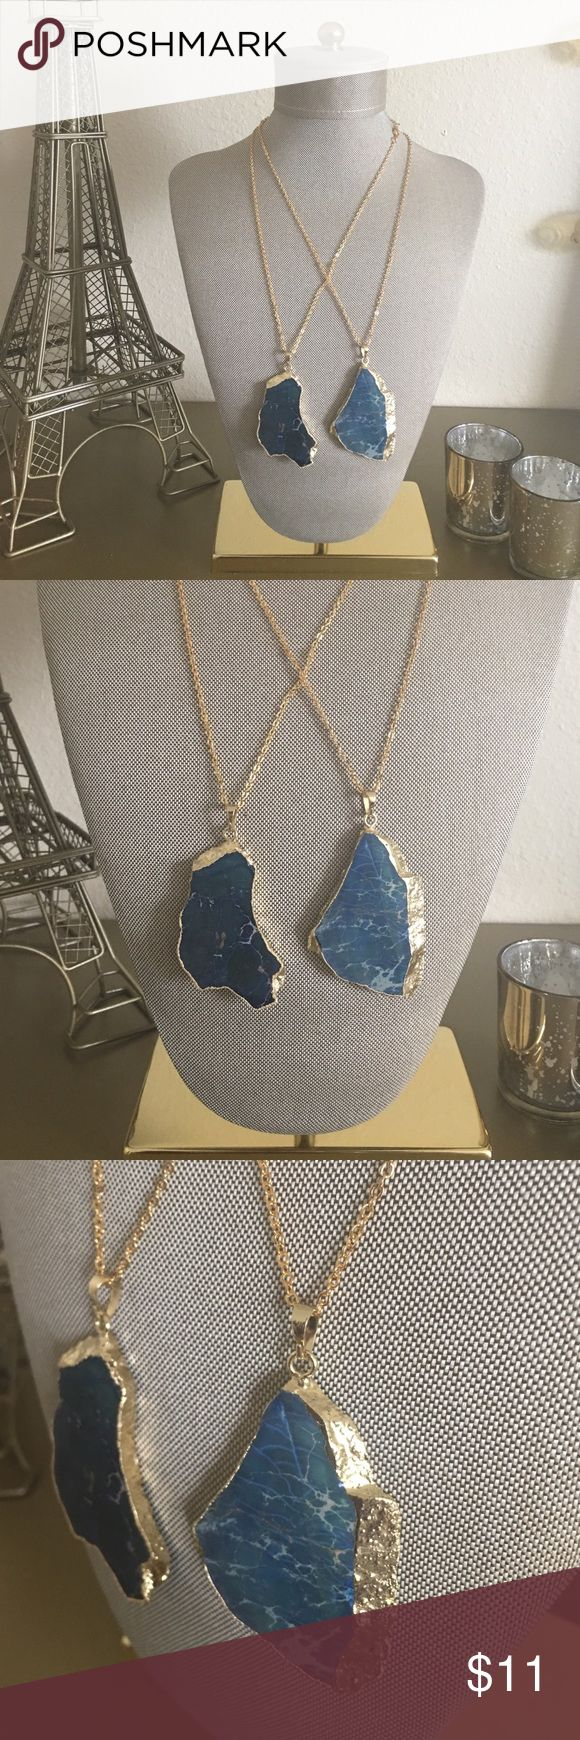 ✨✨24 K Natural Gold Plated Boho Pendant This Deep Blue natural ocean jasper stone will compliment any blouse and leave other staring. All pendants are wrapped with 24 karat gold with a 18inch 24 karat gold chain.   *No 2 pendants are the same. *No Low Balling Please❌❌ *Serious Inquiries Only✔️😜   ▶️▶️Follow on FB @ Living Colors Boutique, Instagram @ livingcolorsboutique, Twitter @ lcb_clothing,  or our website www.livingcolorsboutique.com Accessories